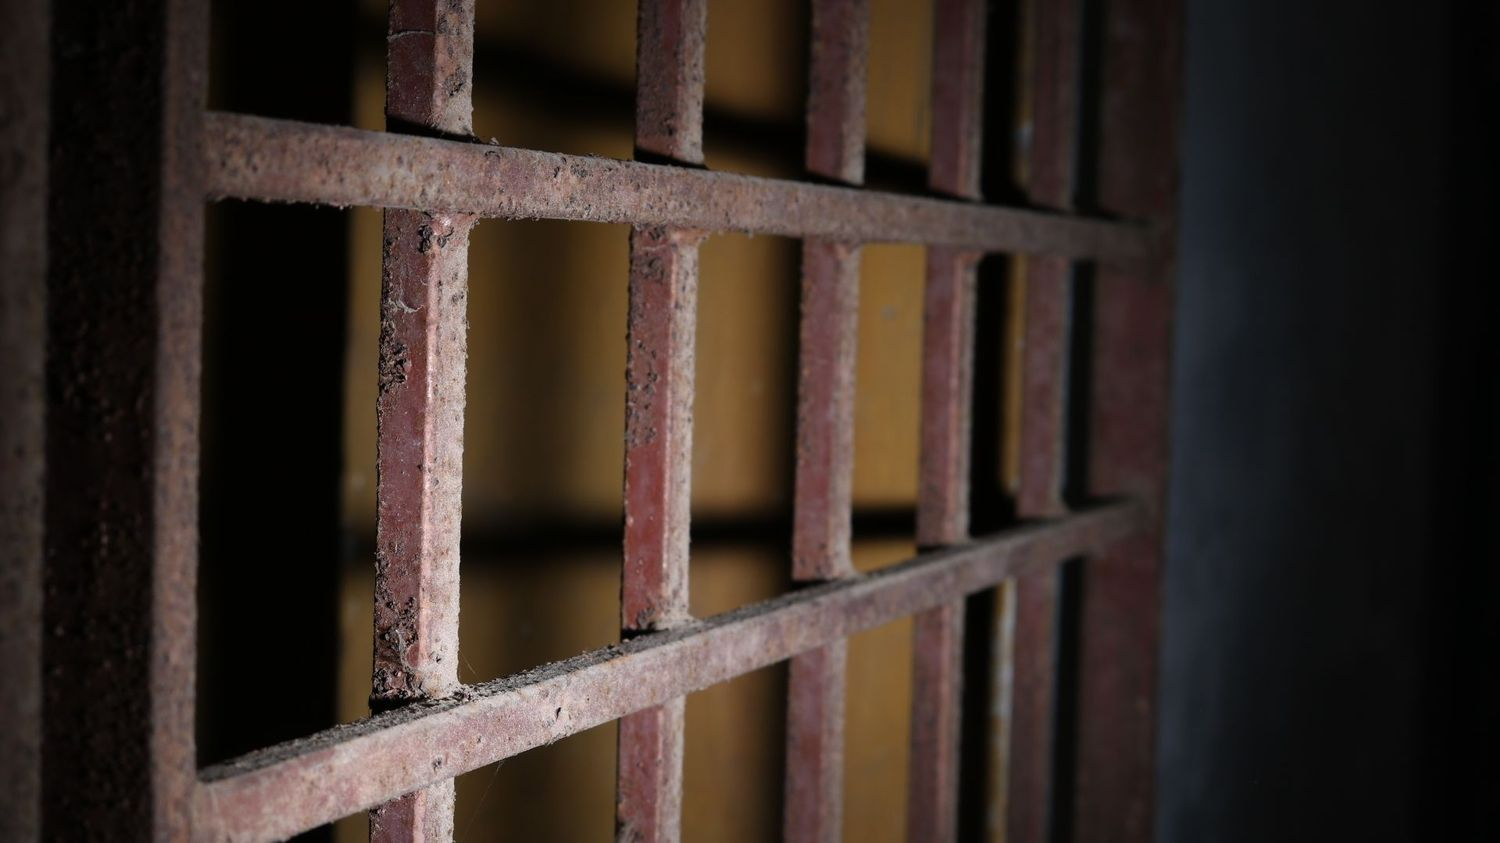 Is Illinois Fully Compliant With the Prison Rape Elimination Act? Third Trans Inmate Sues